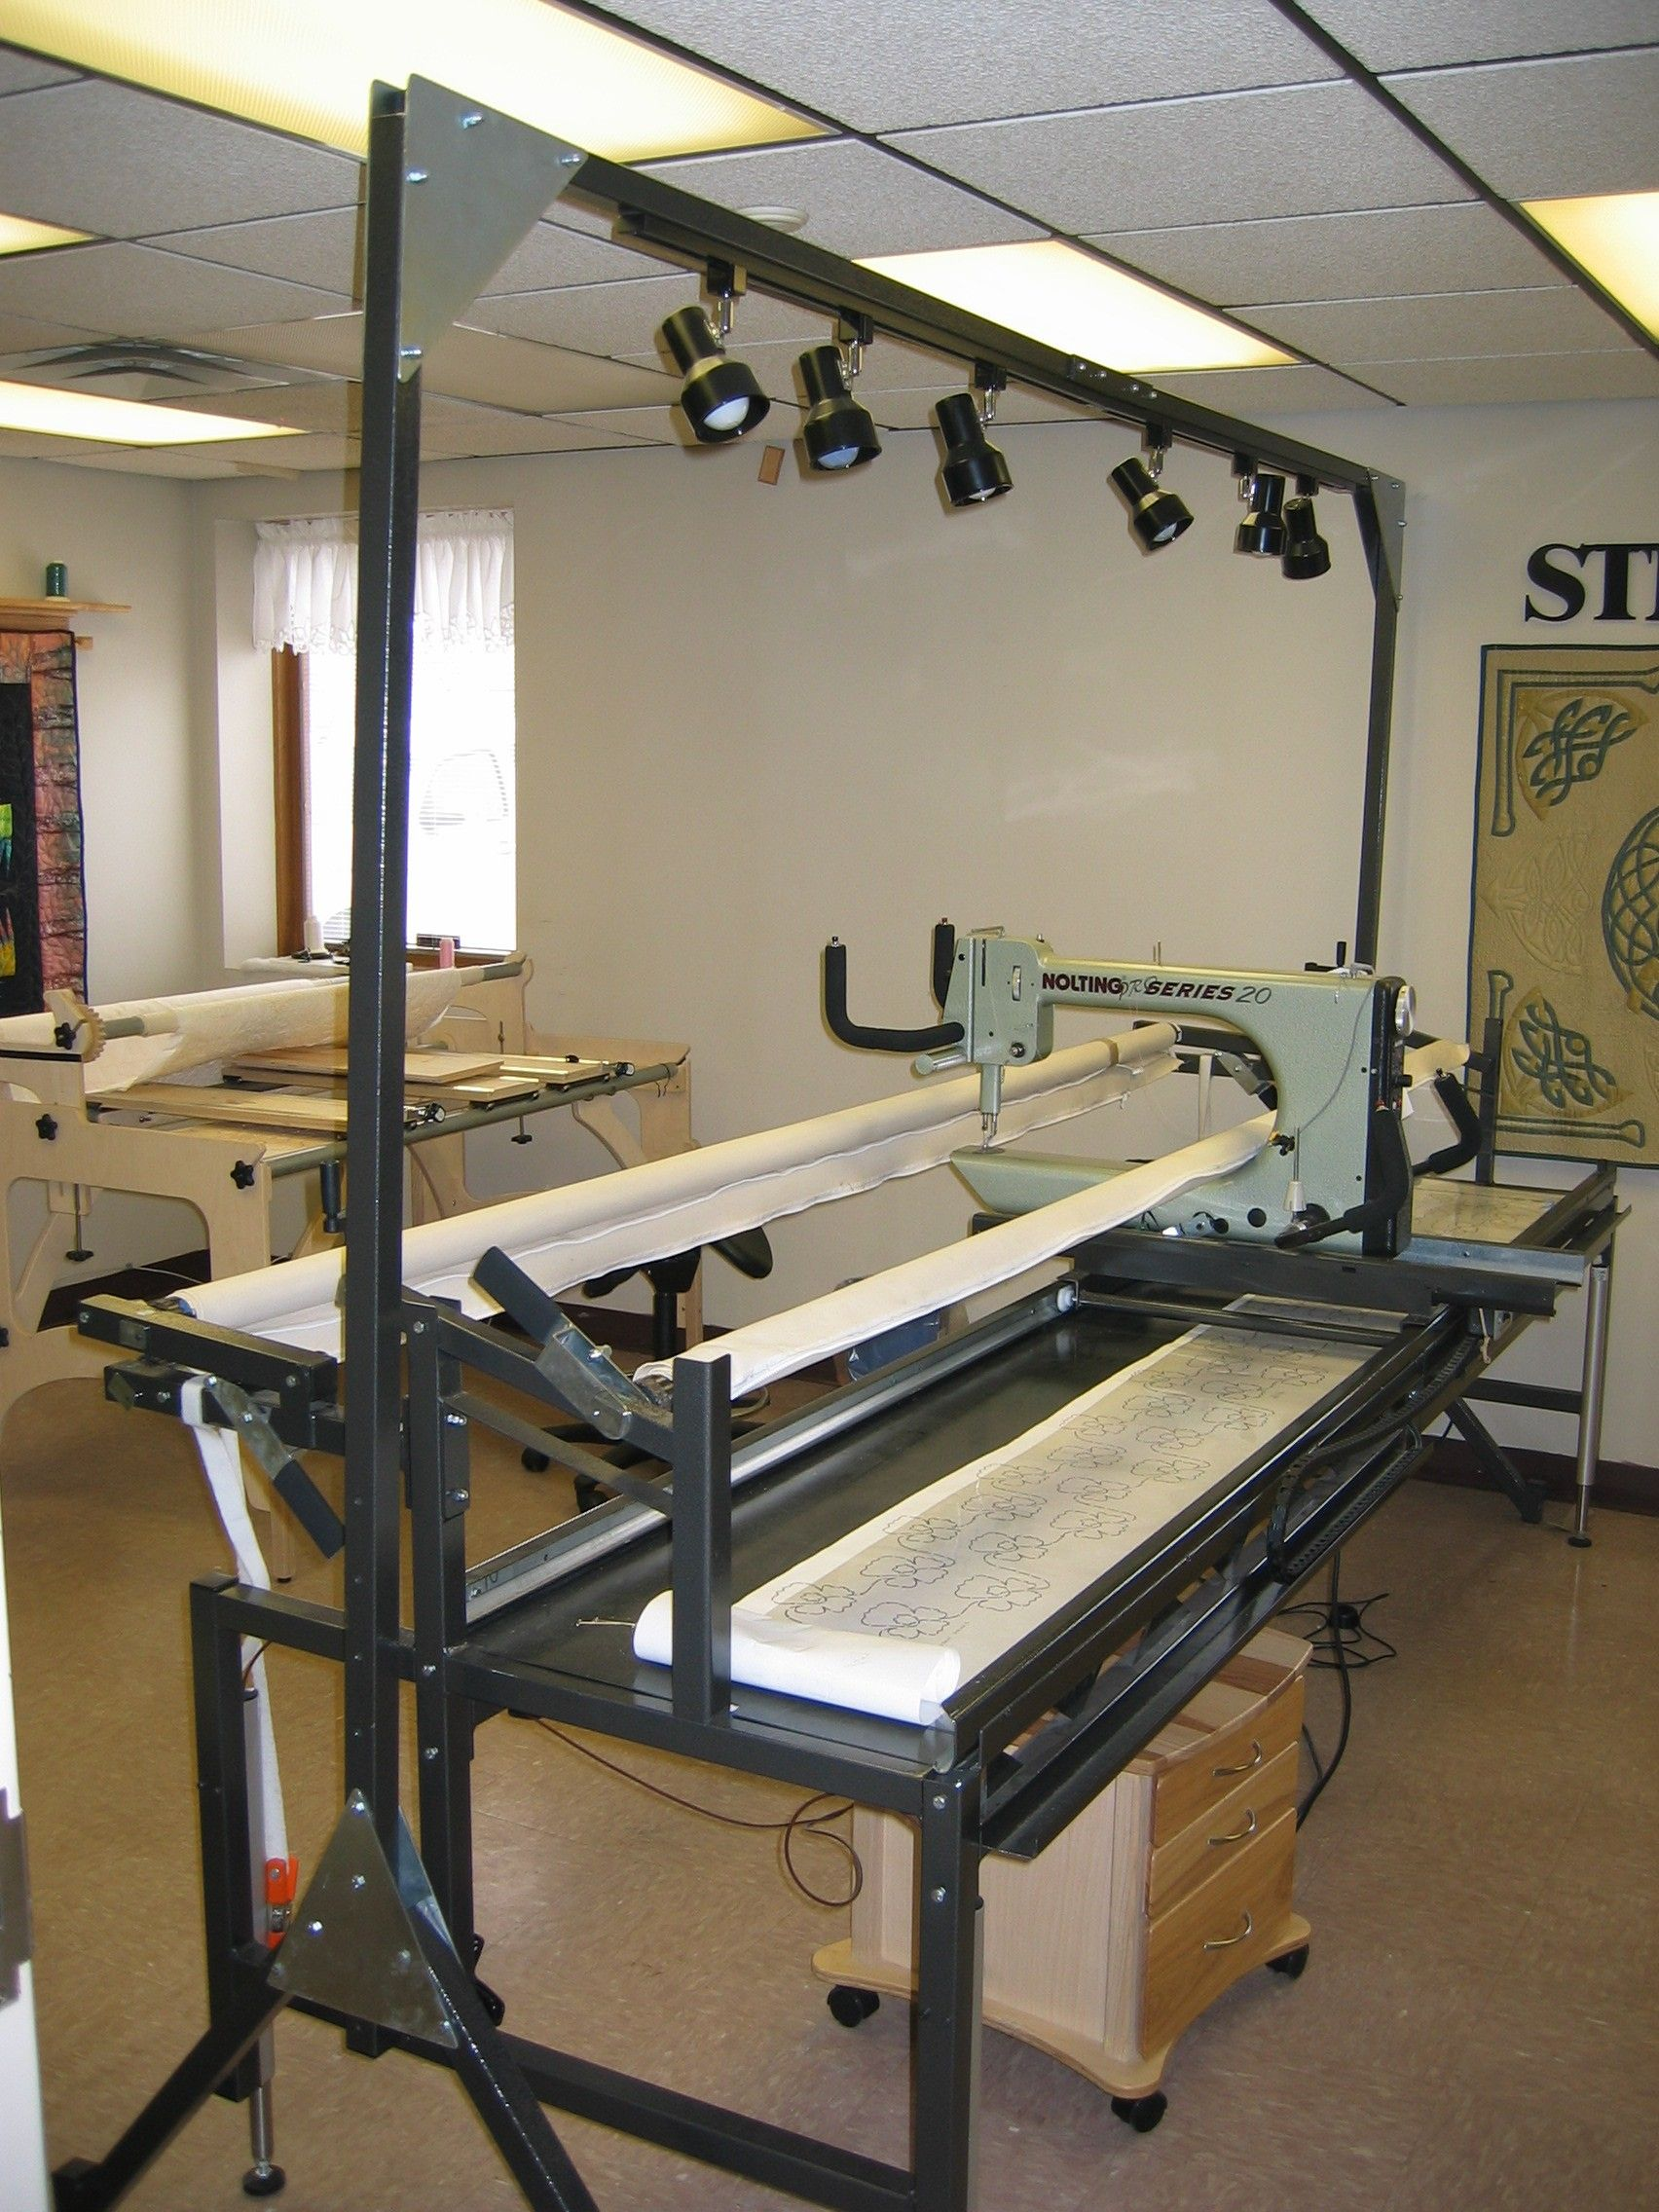 Nolting 174 Longarm Machines Leader In Quality Quilting